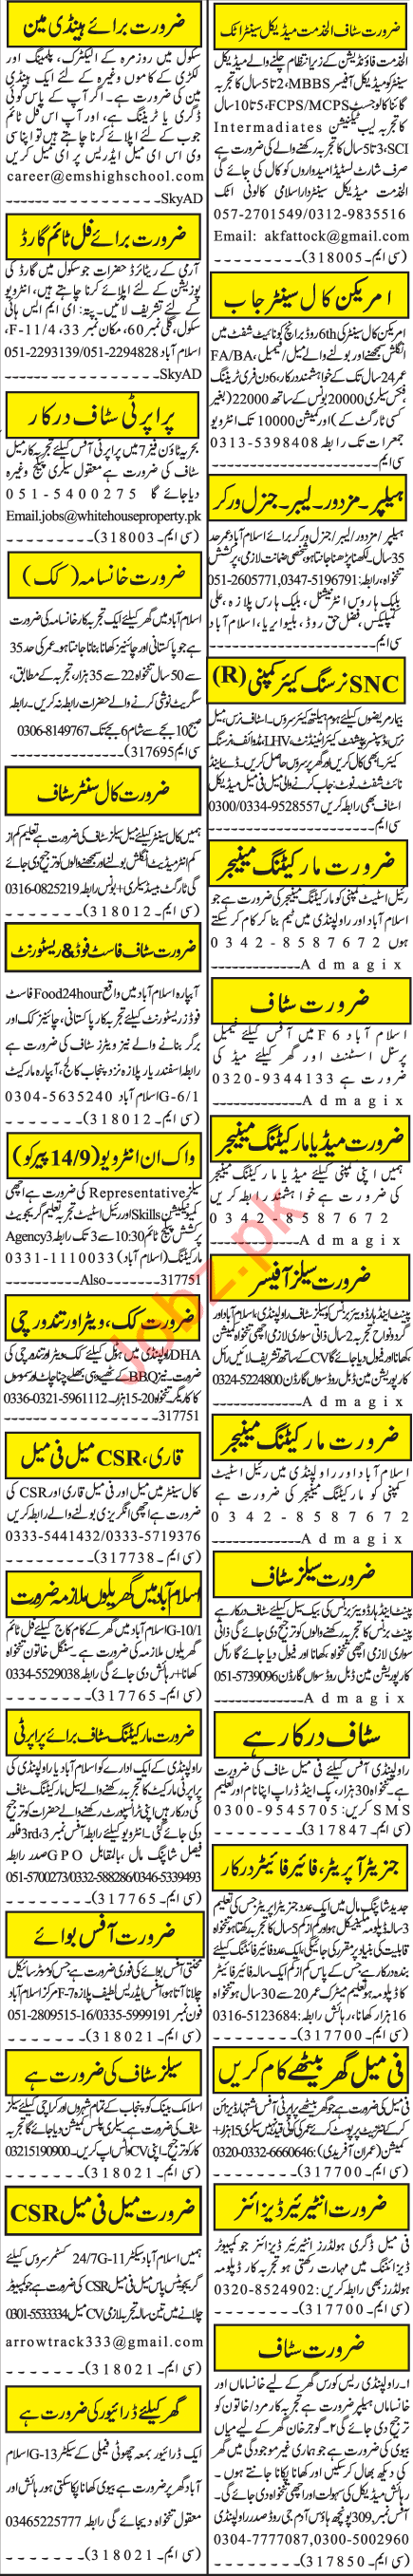 Jang Sunday Classified Ads 13 Sep 2020 for Office Staff